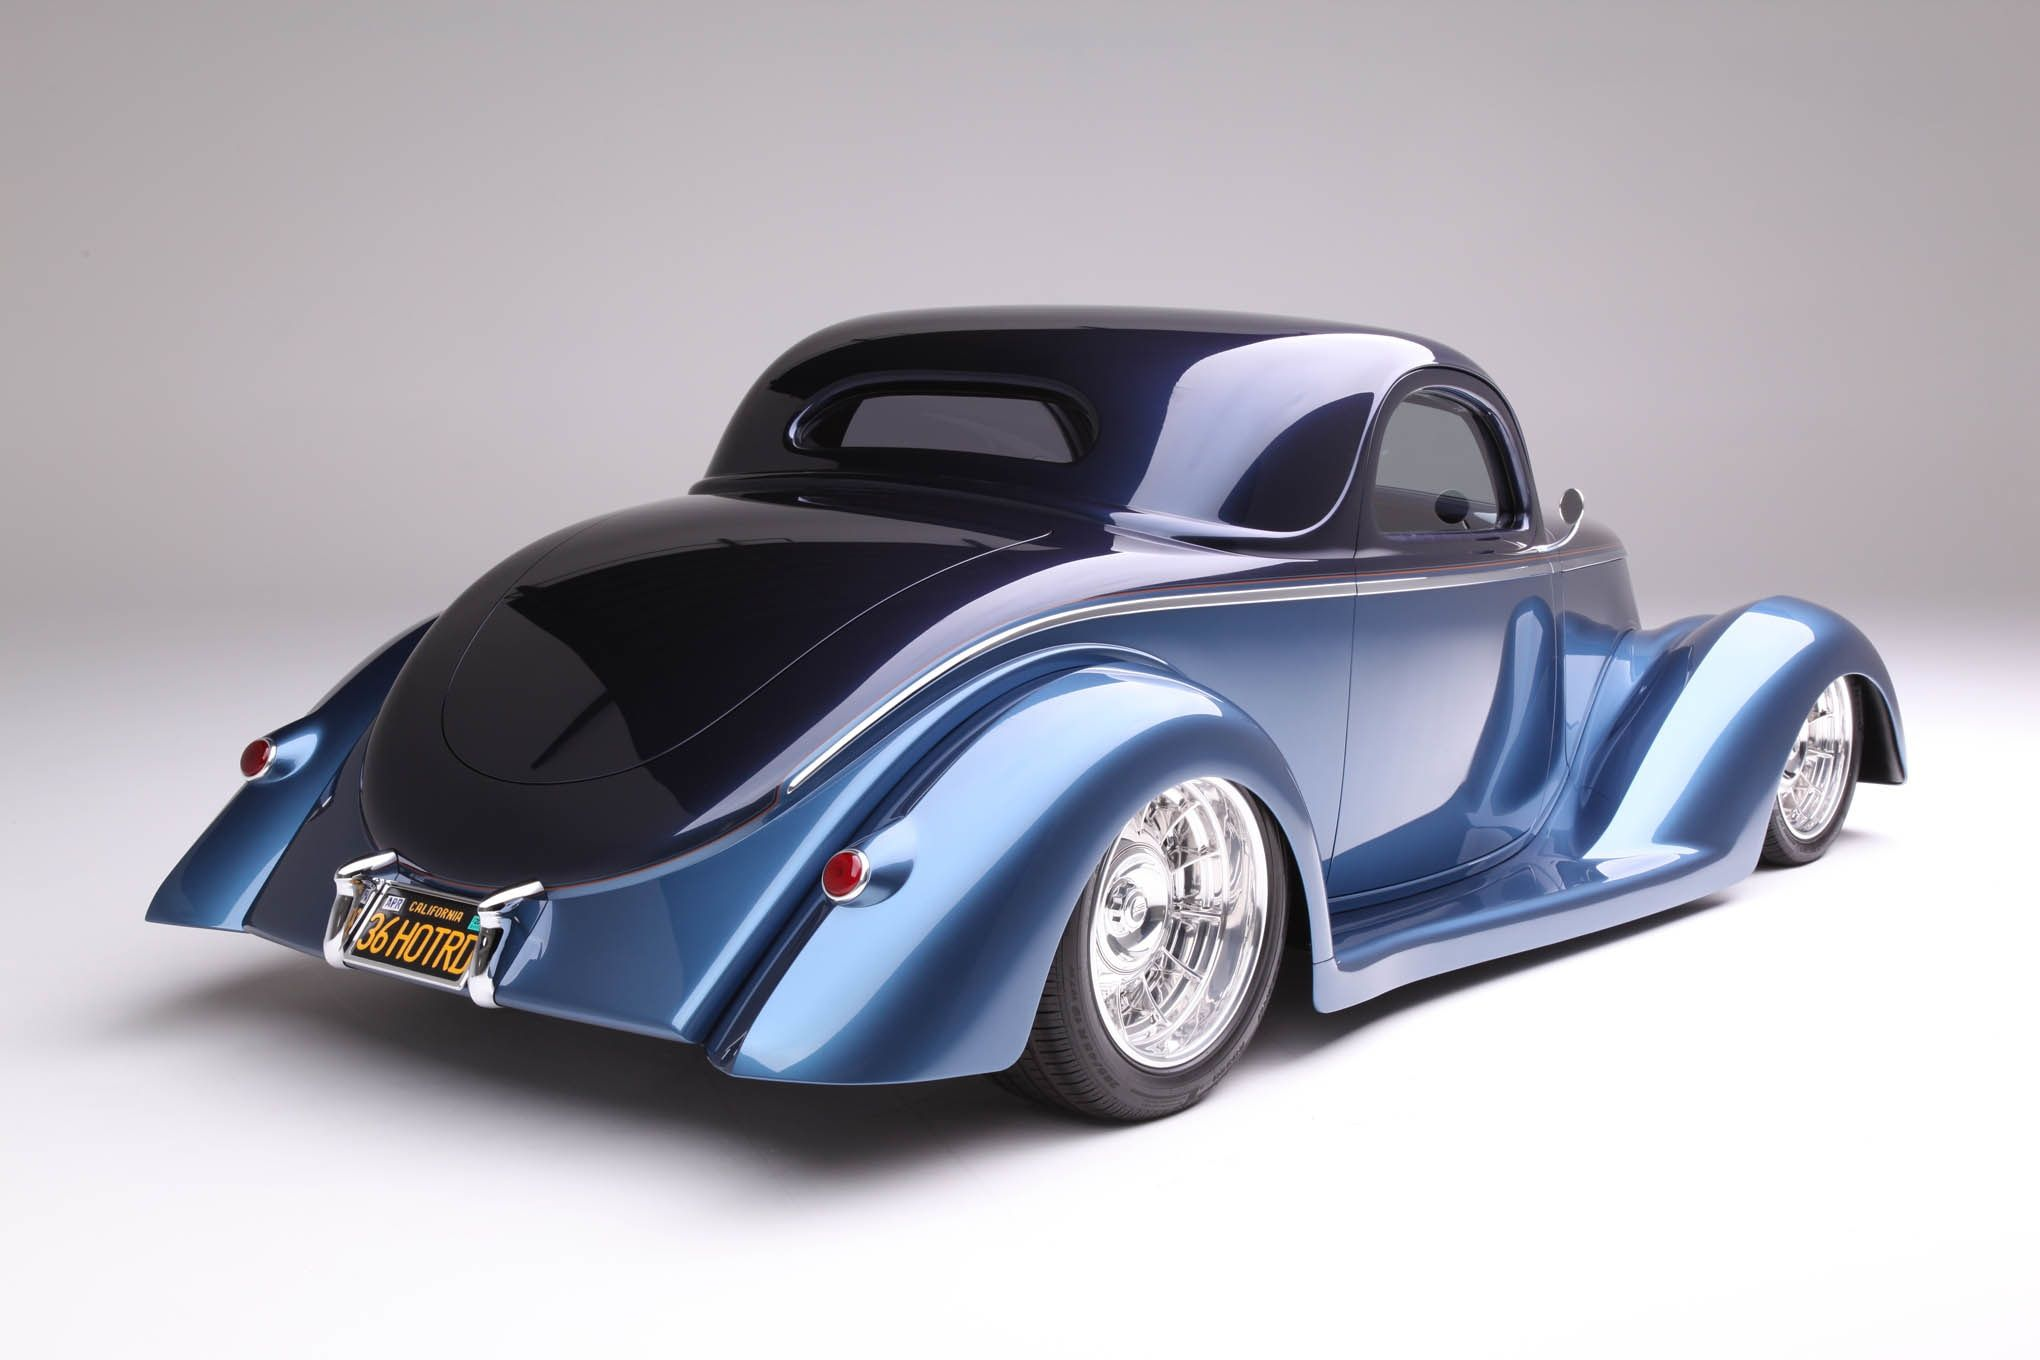 1936 Ford Coupe Is Chip Foose Designed And Handformed In Metal By Marcel De Ley Hot Rod Network Foose Classic Cars Hot Rods Cars